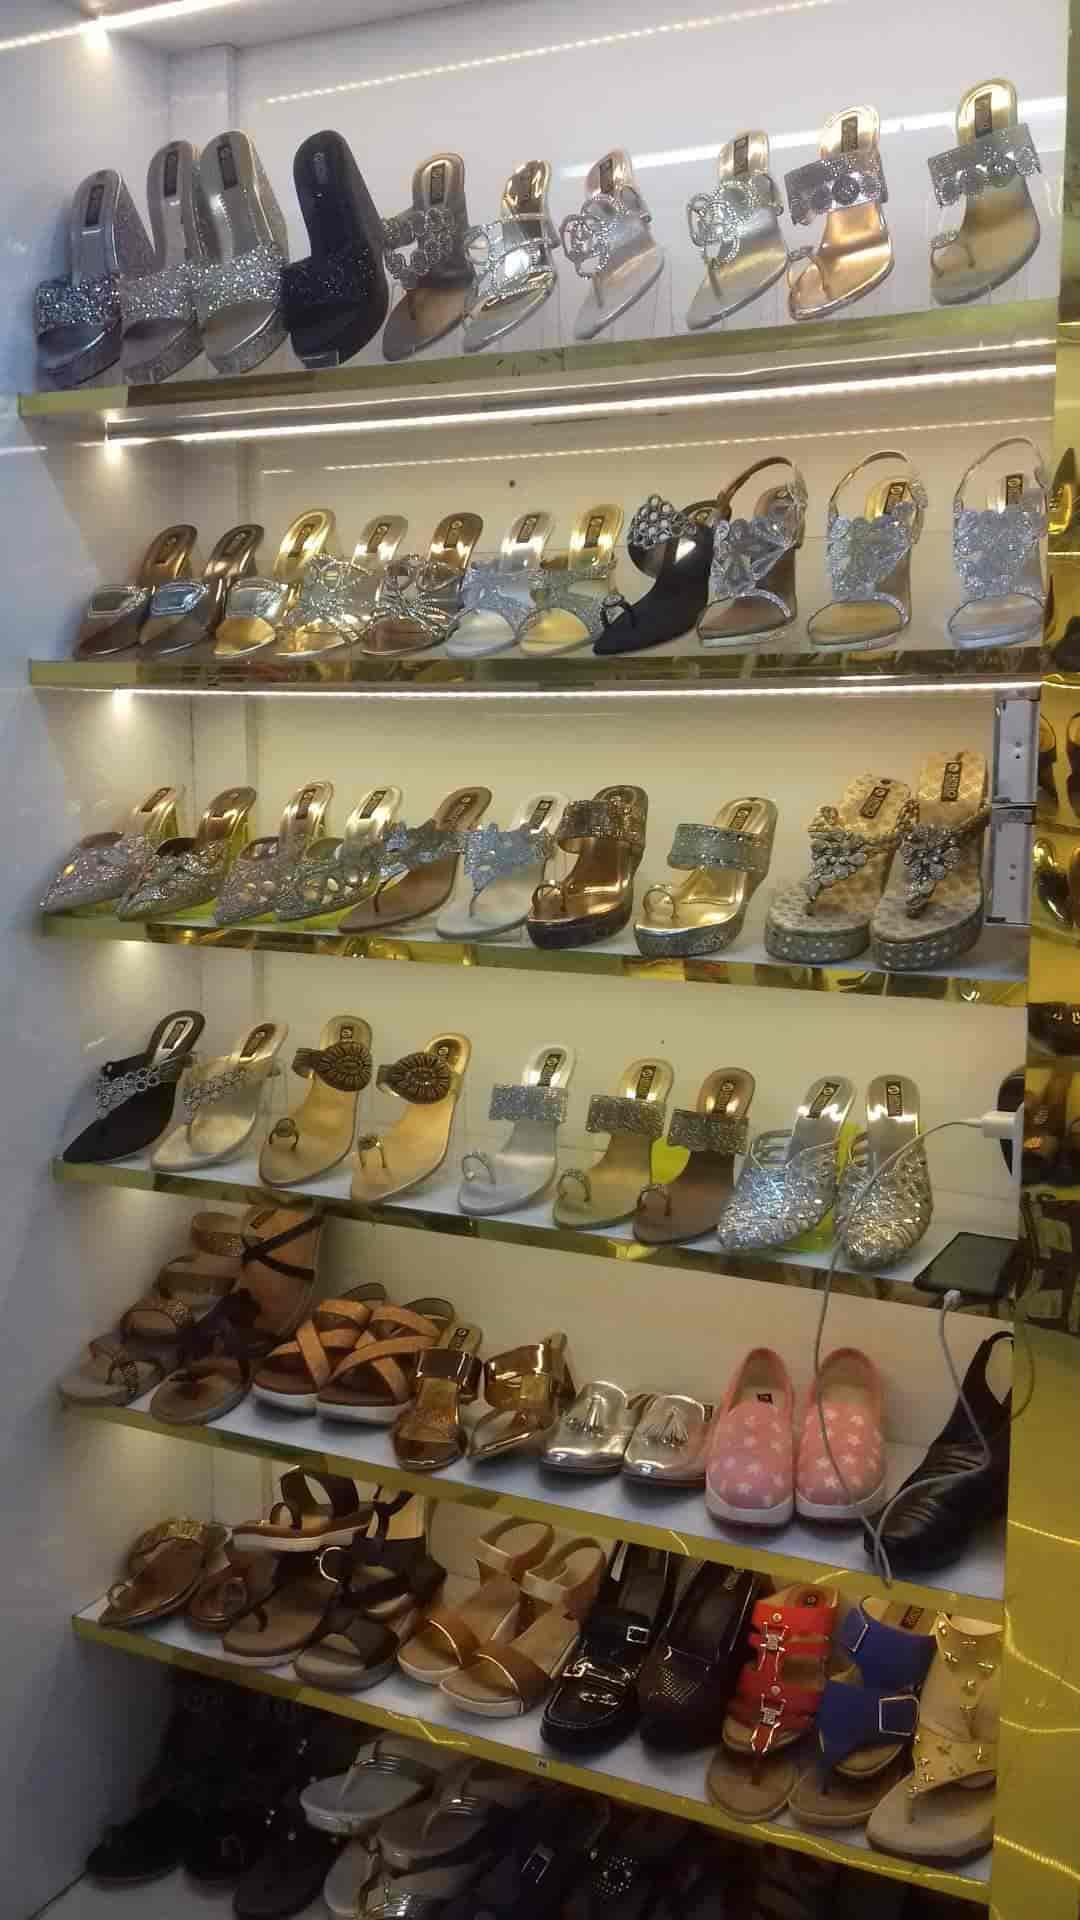 West ShoesMulund In Dealers Shoe Senso Vegetarian Justdial Mumbai wPiTZkXOu